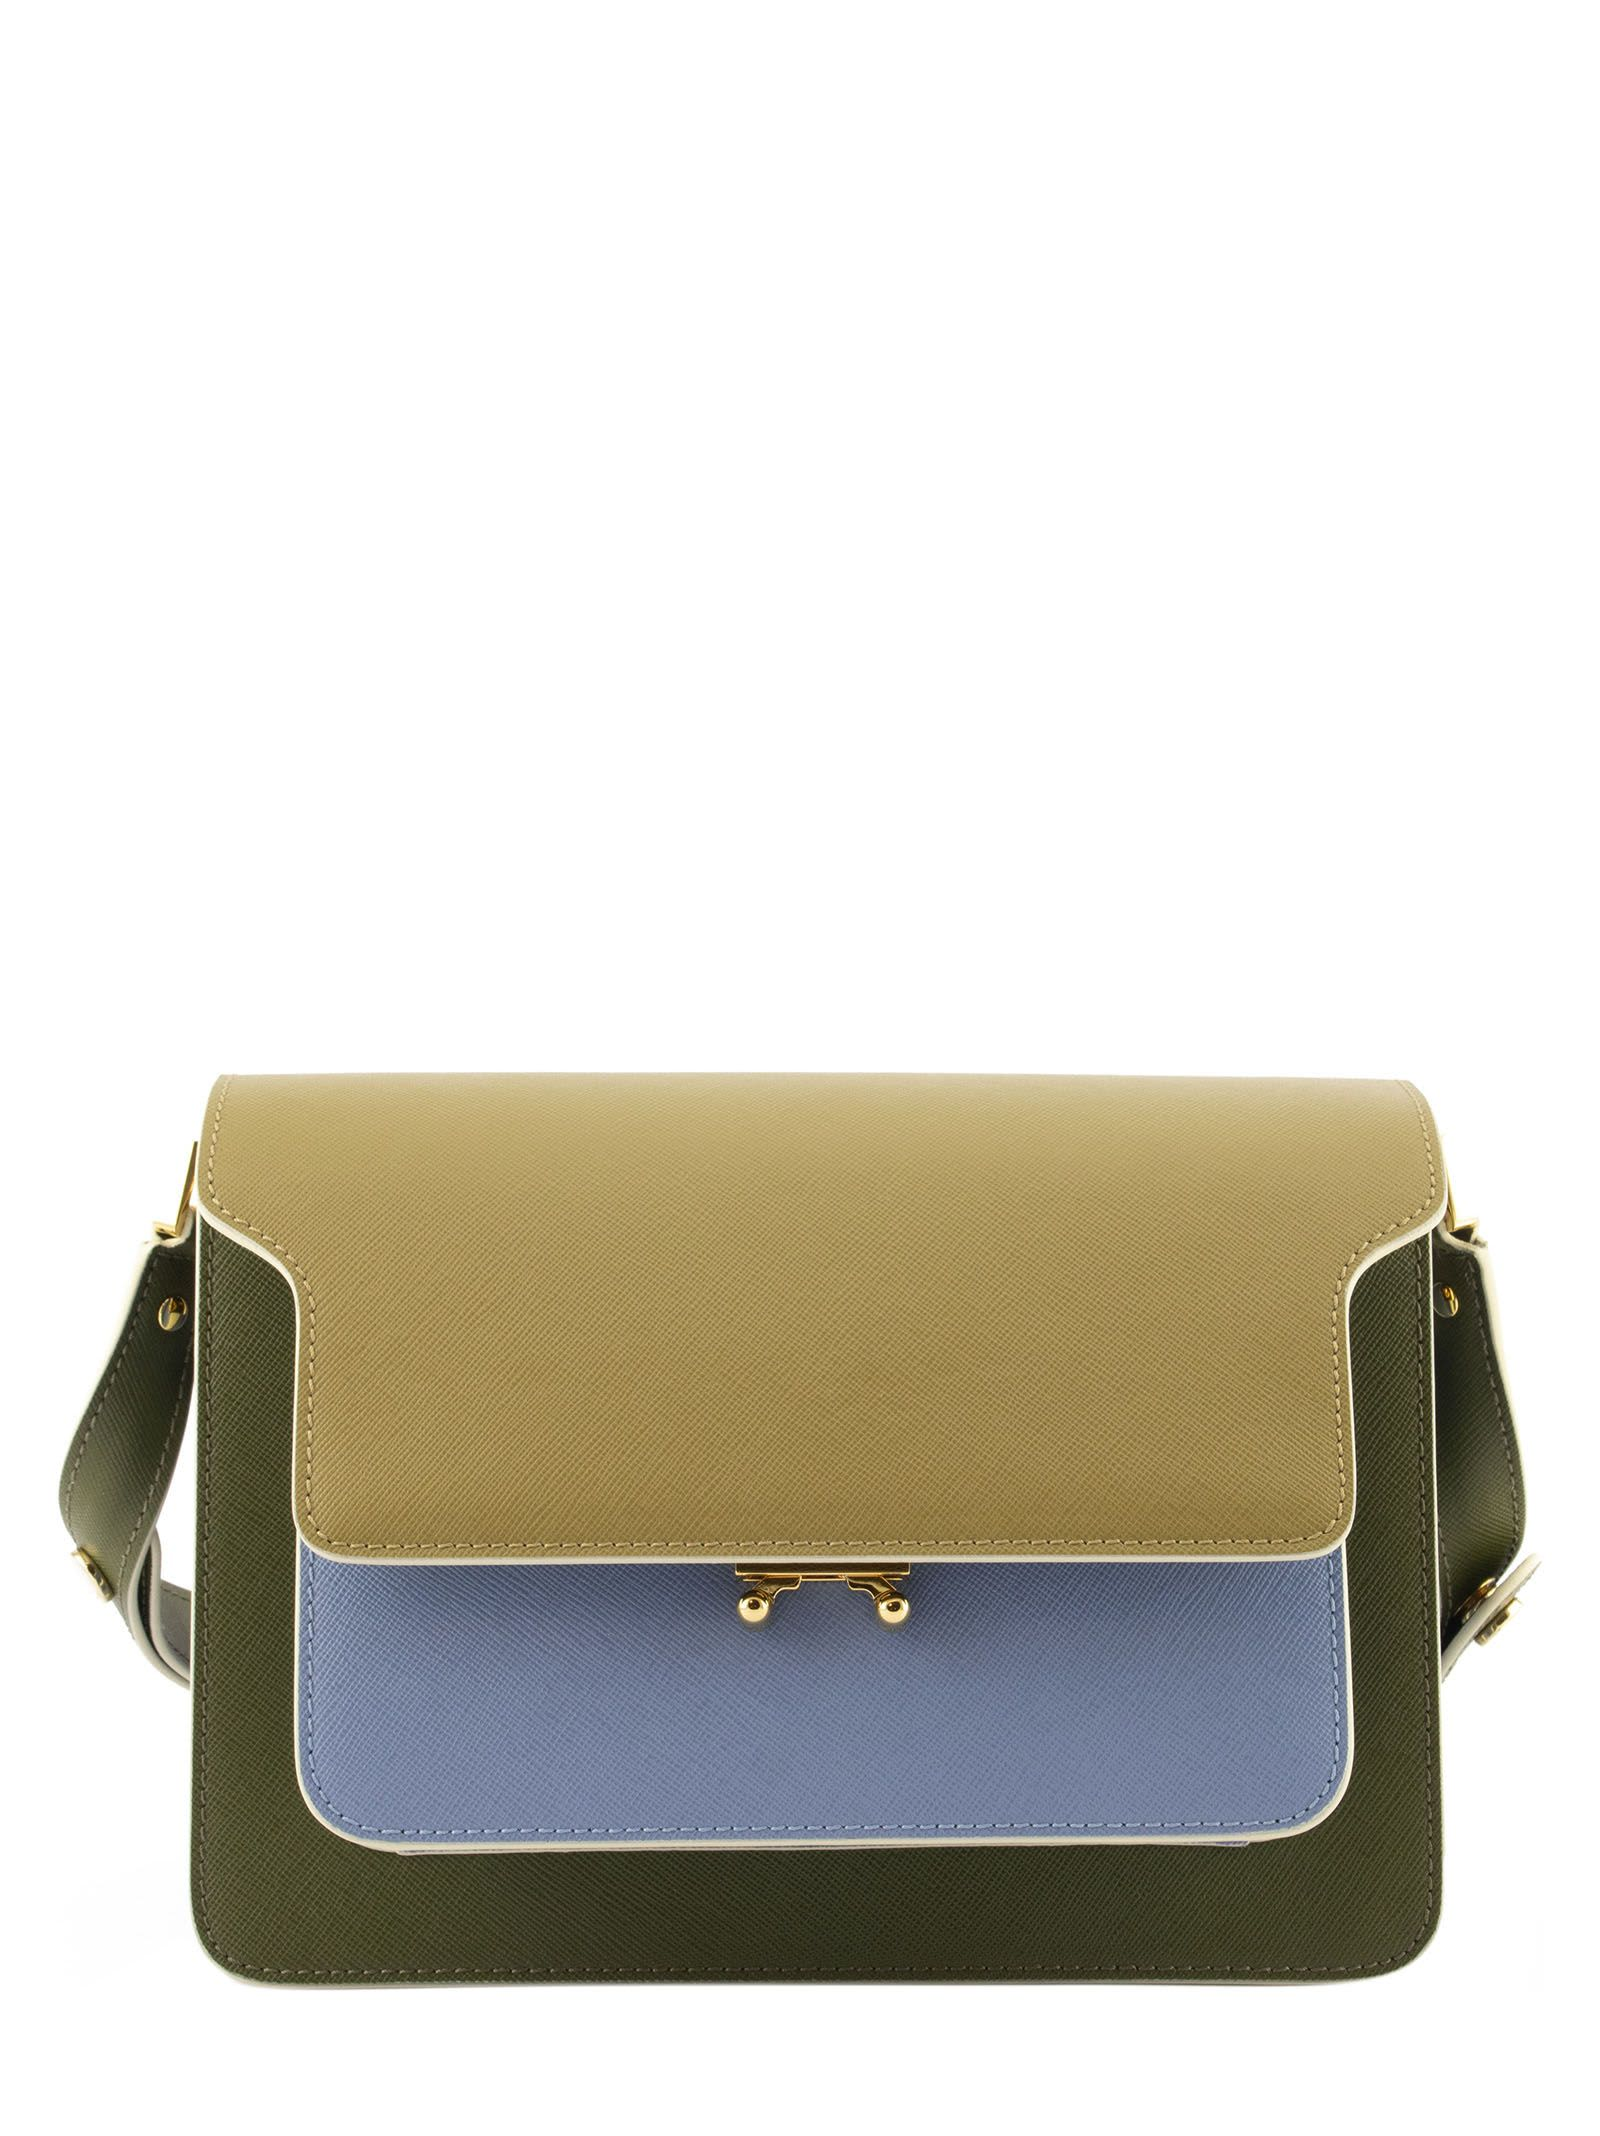 Marni Pants TRUNK BAG IN SMOOTH CALF BEIGE PALE BLUE AND GREEN